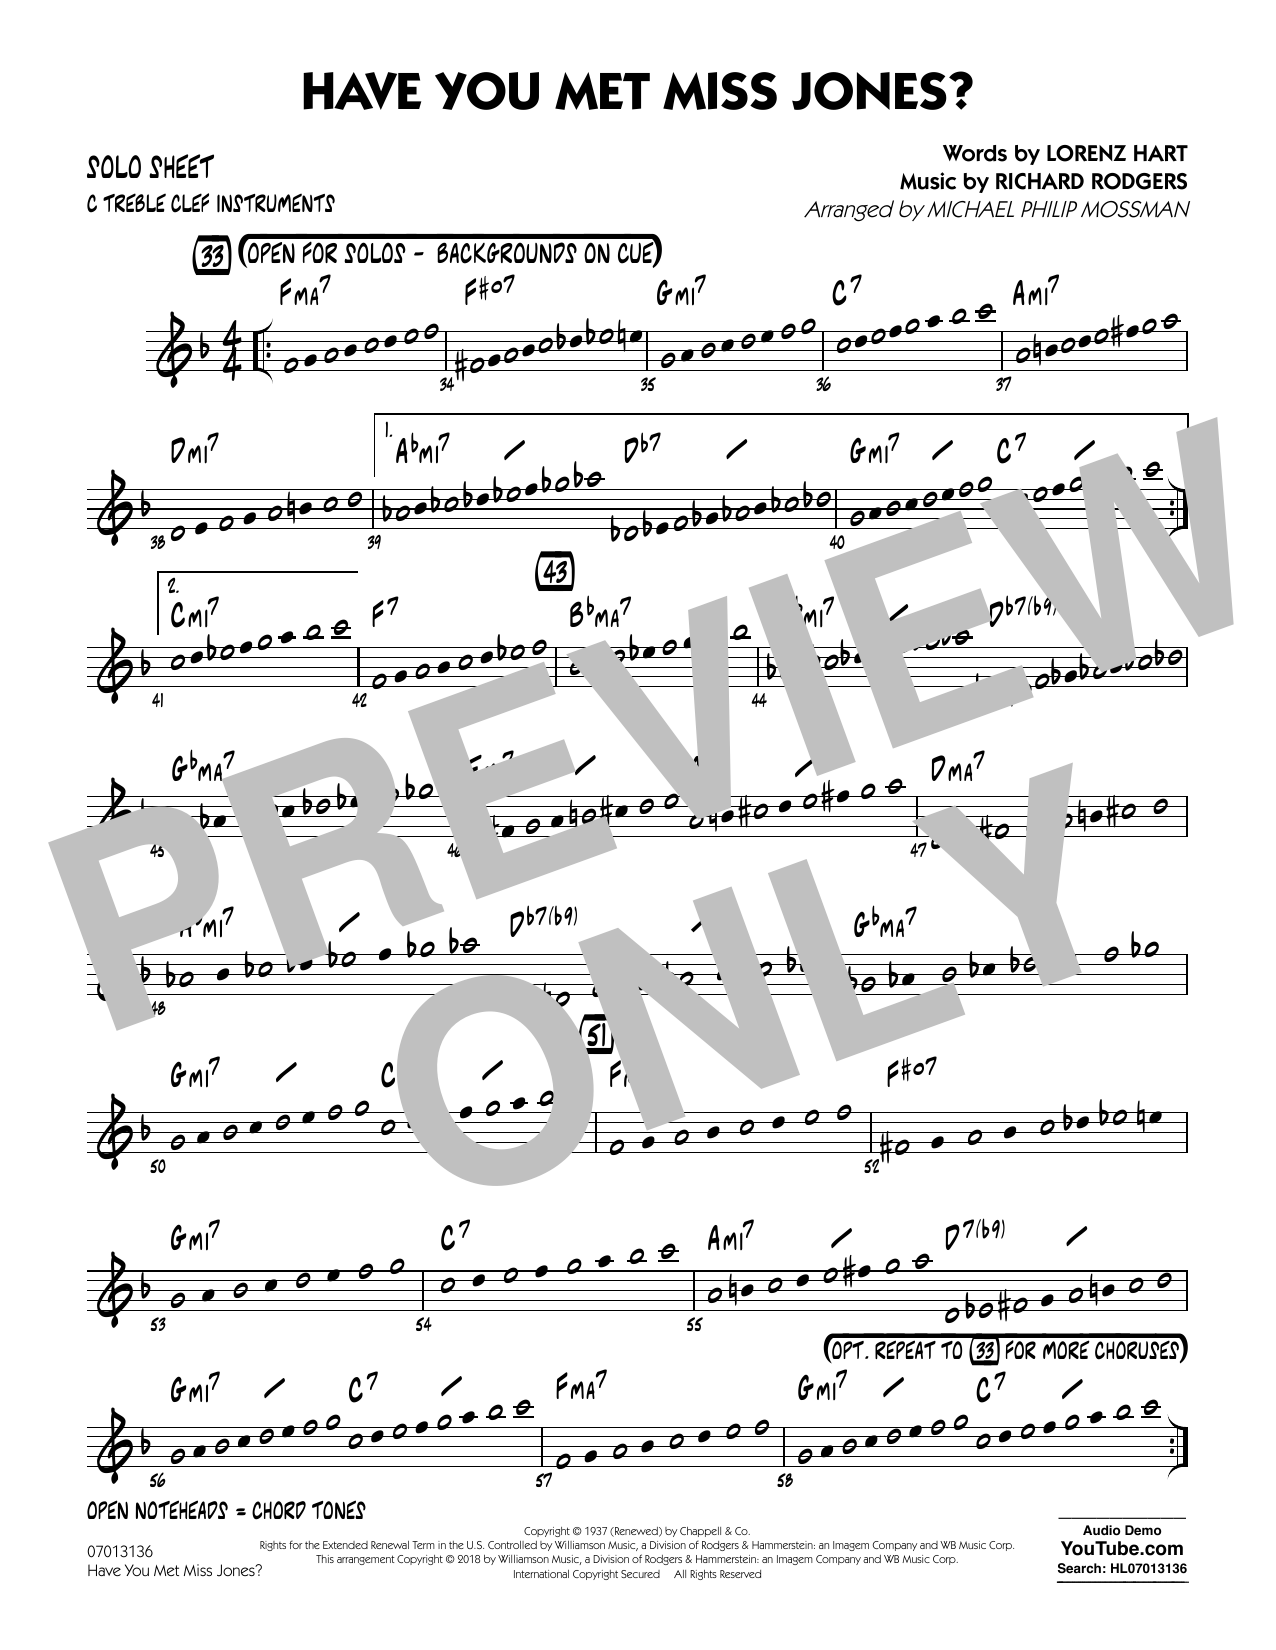 Rodgers & Hart Have You Met Miss Jones? (arr. Michael Mossman) - C Solo Sheet sheet music notes and chords. Download Printable PDF.